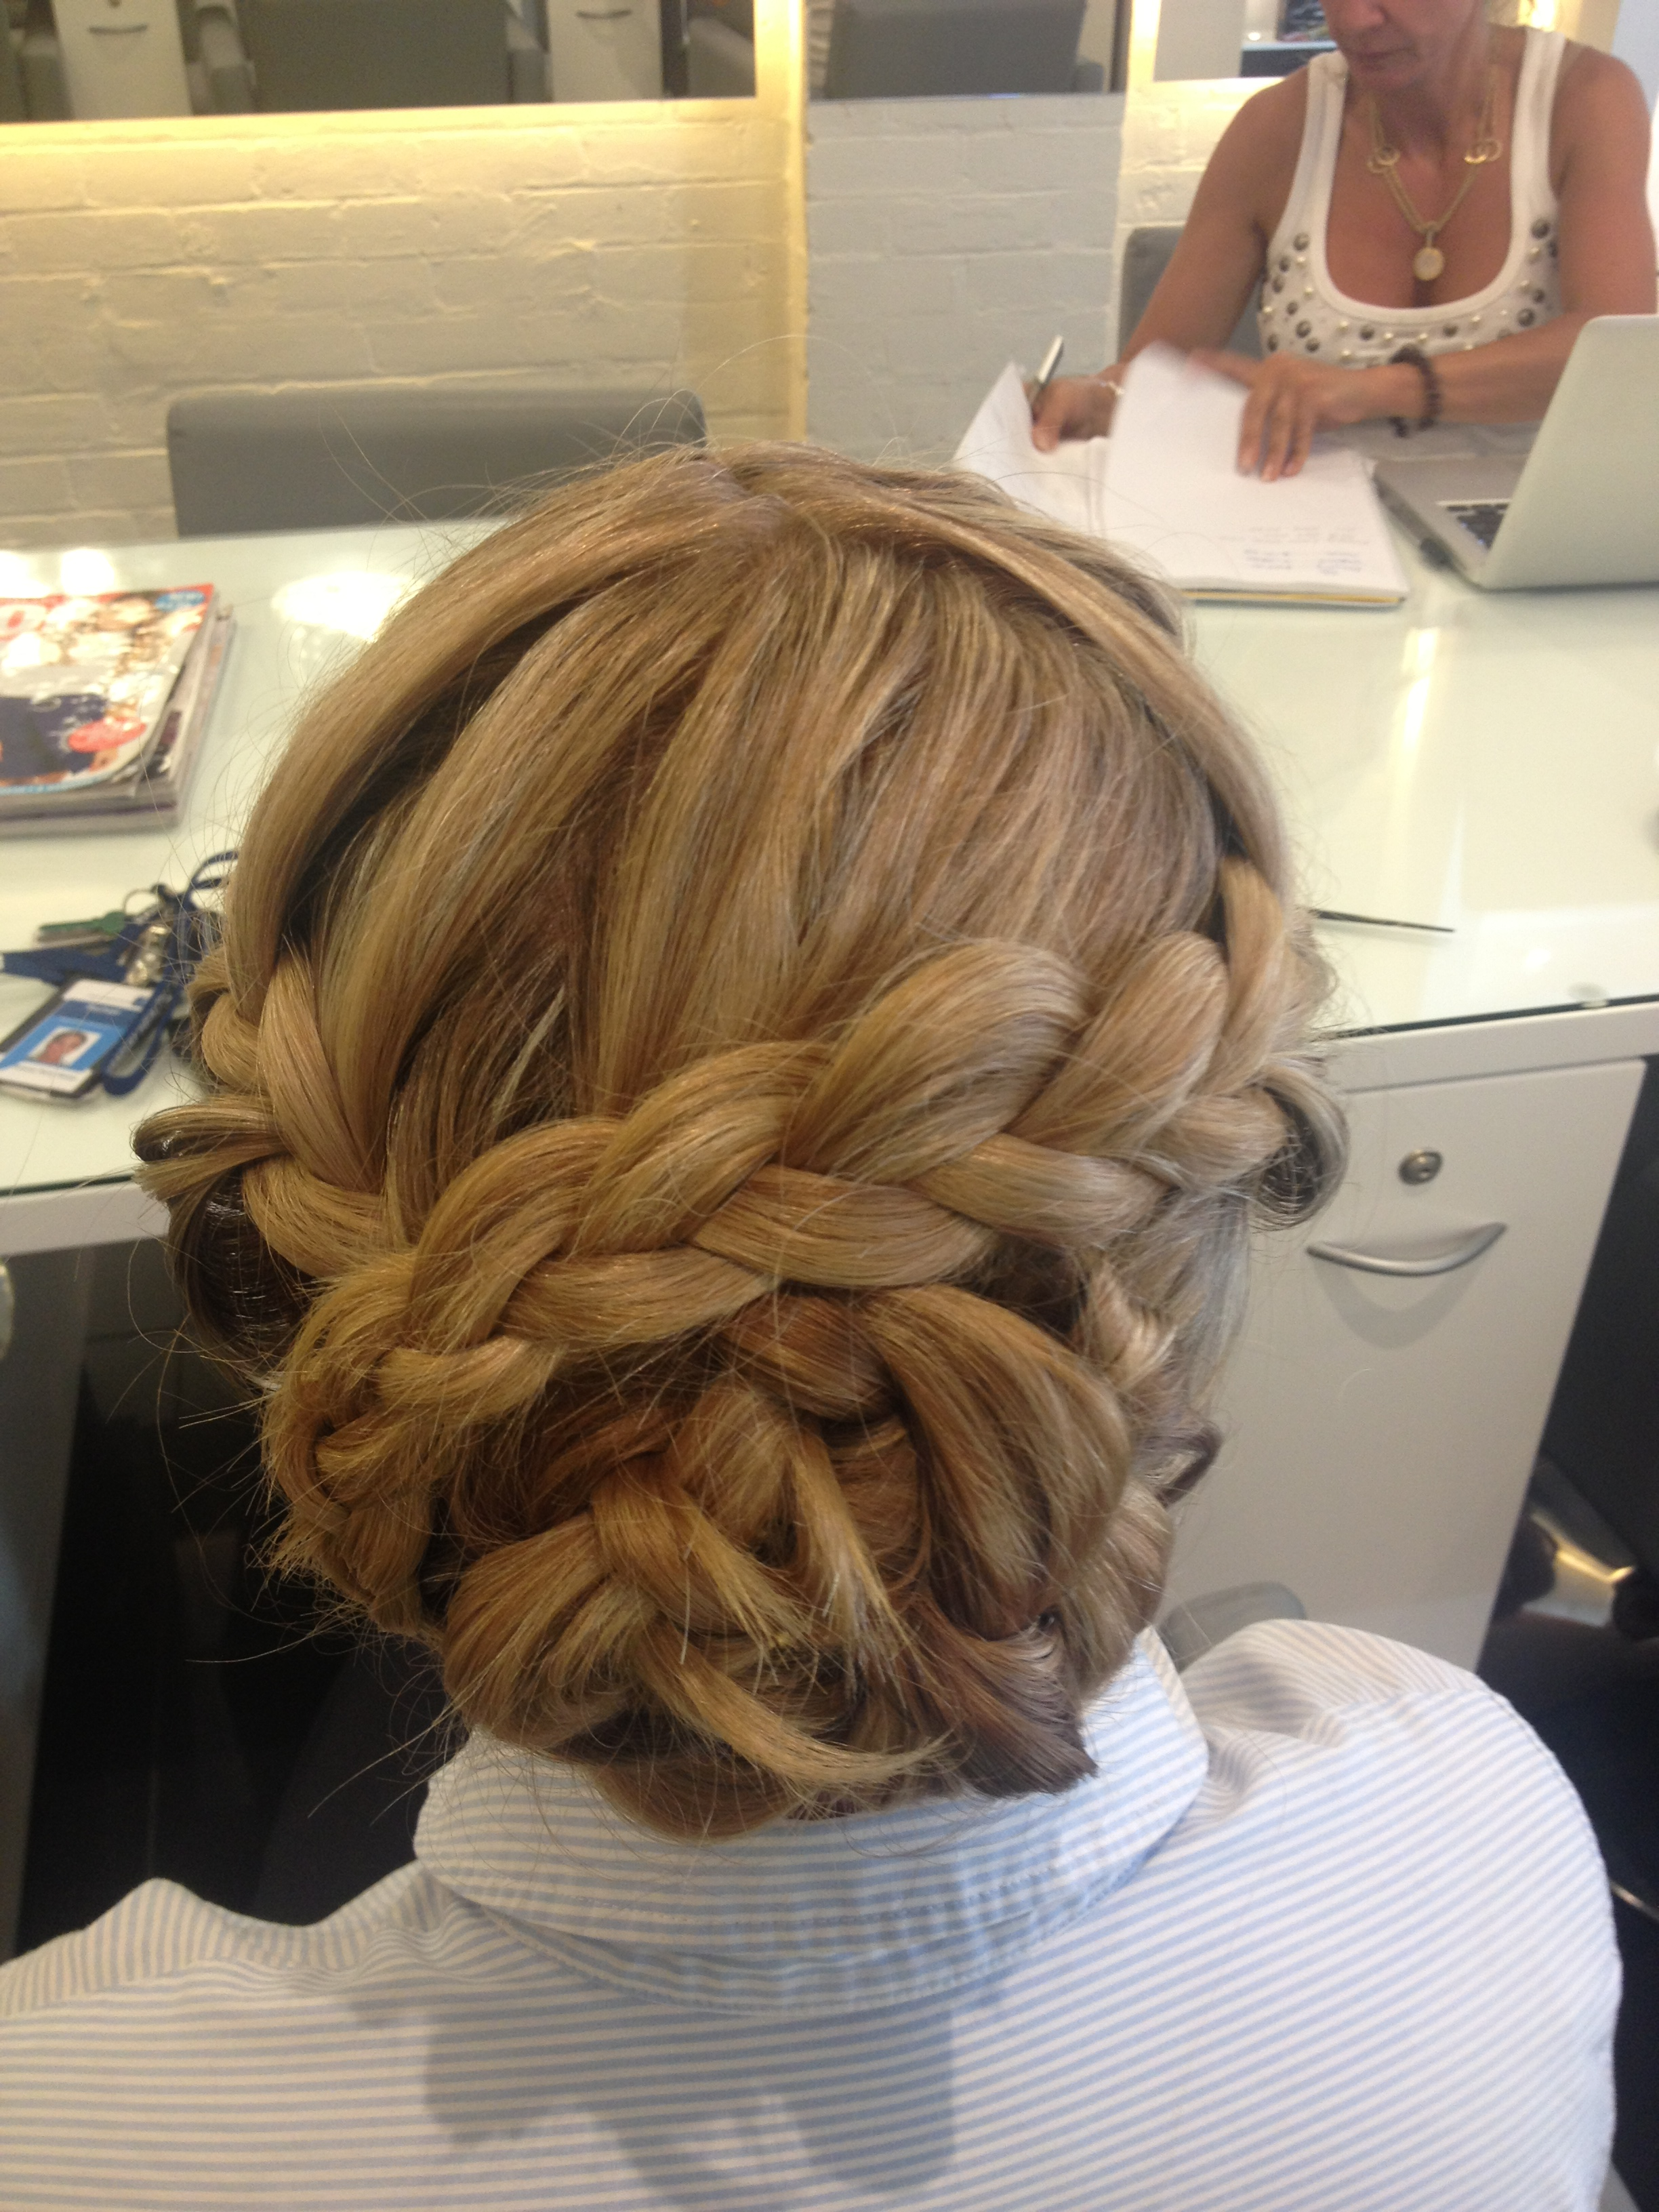 Hair by Tara